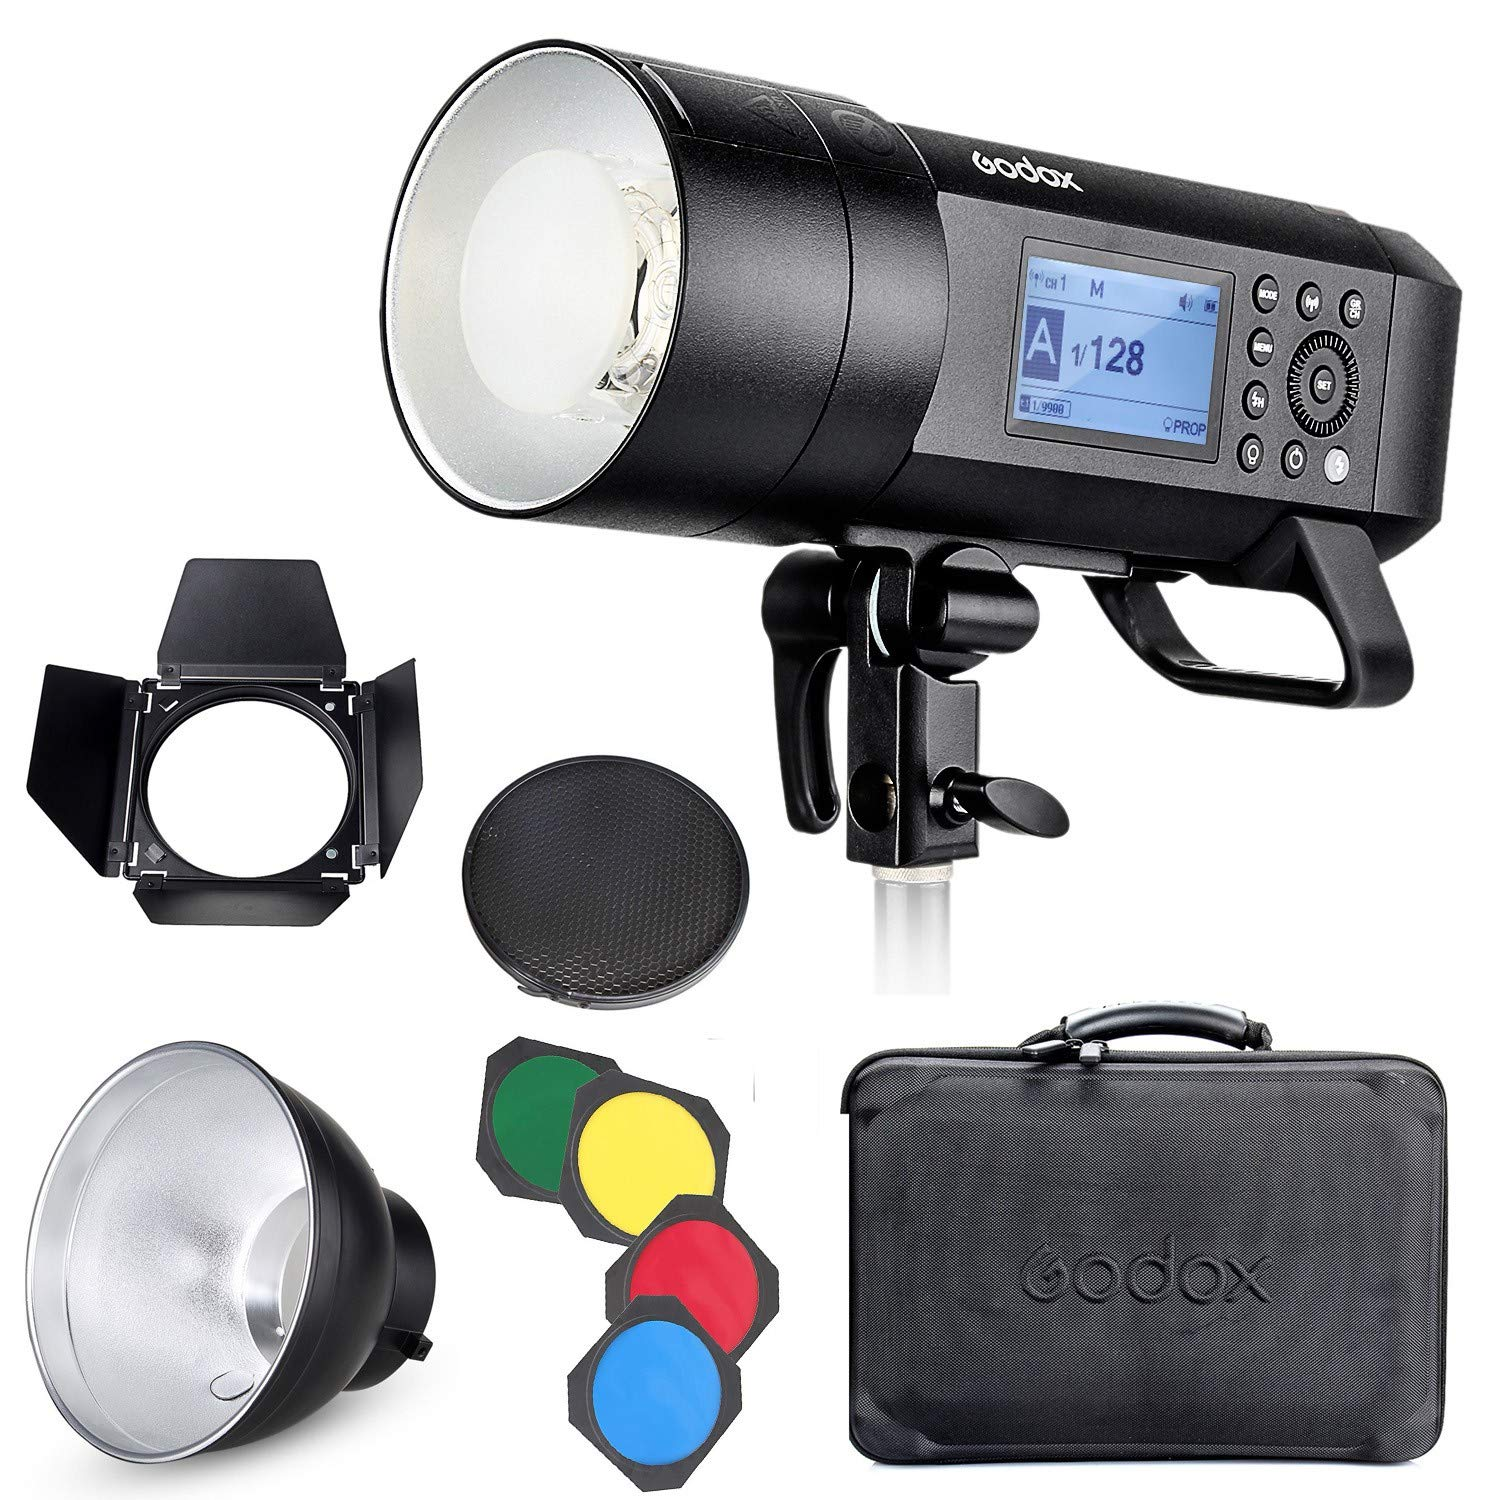 Godox AD400 Pro Kit, 400ws GN72 TTL Battery-Powered Monolight, 1/8000 HSS Outdoor Flash Strobe Light, Built-in 2.4G System, 390 Full Power Pops, 0.01-1s Recycle Time, 30w LED Modeling Lamp by Godox